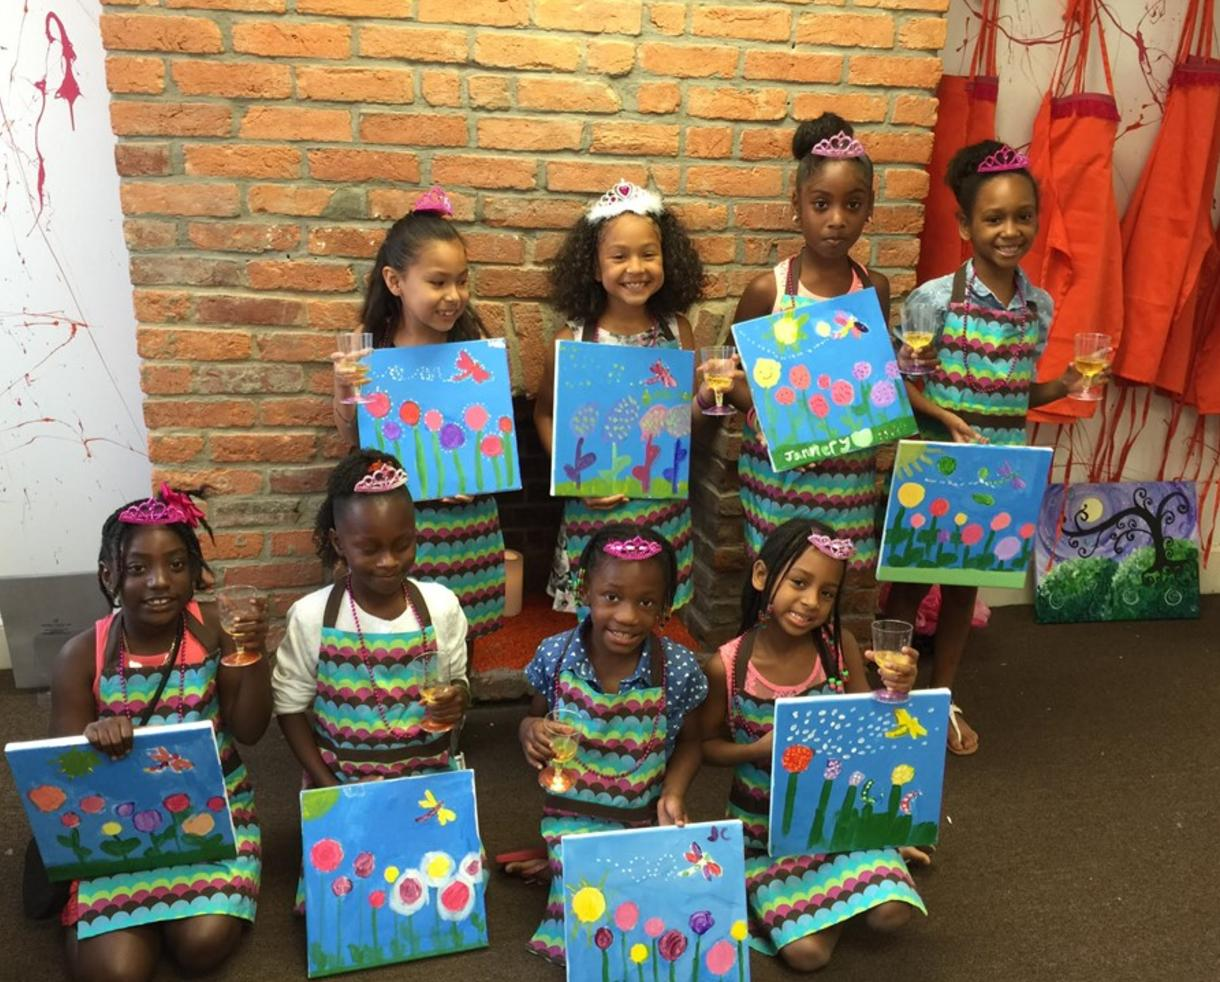 deal 140 for princess or pirates painting party at monet gogh sip